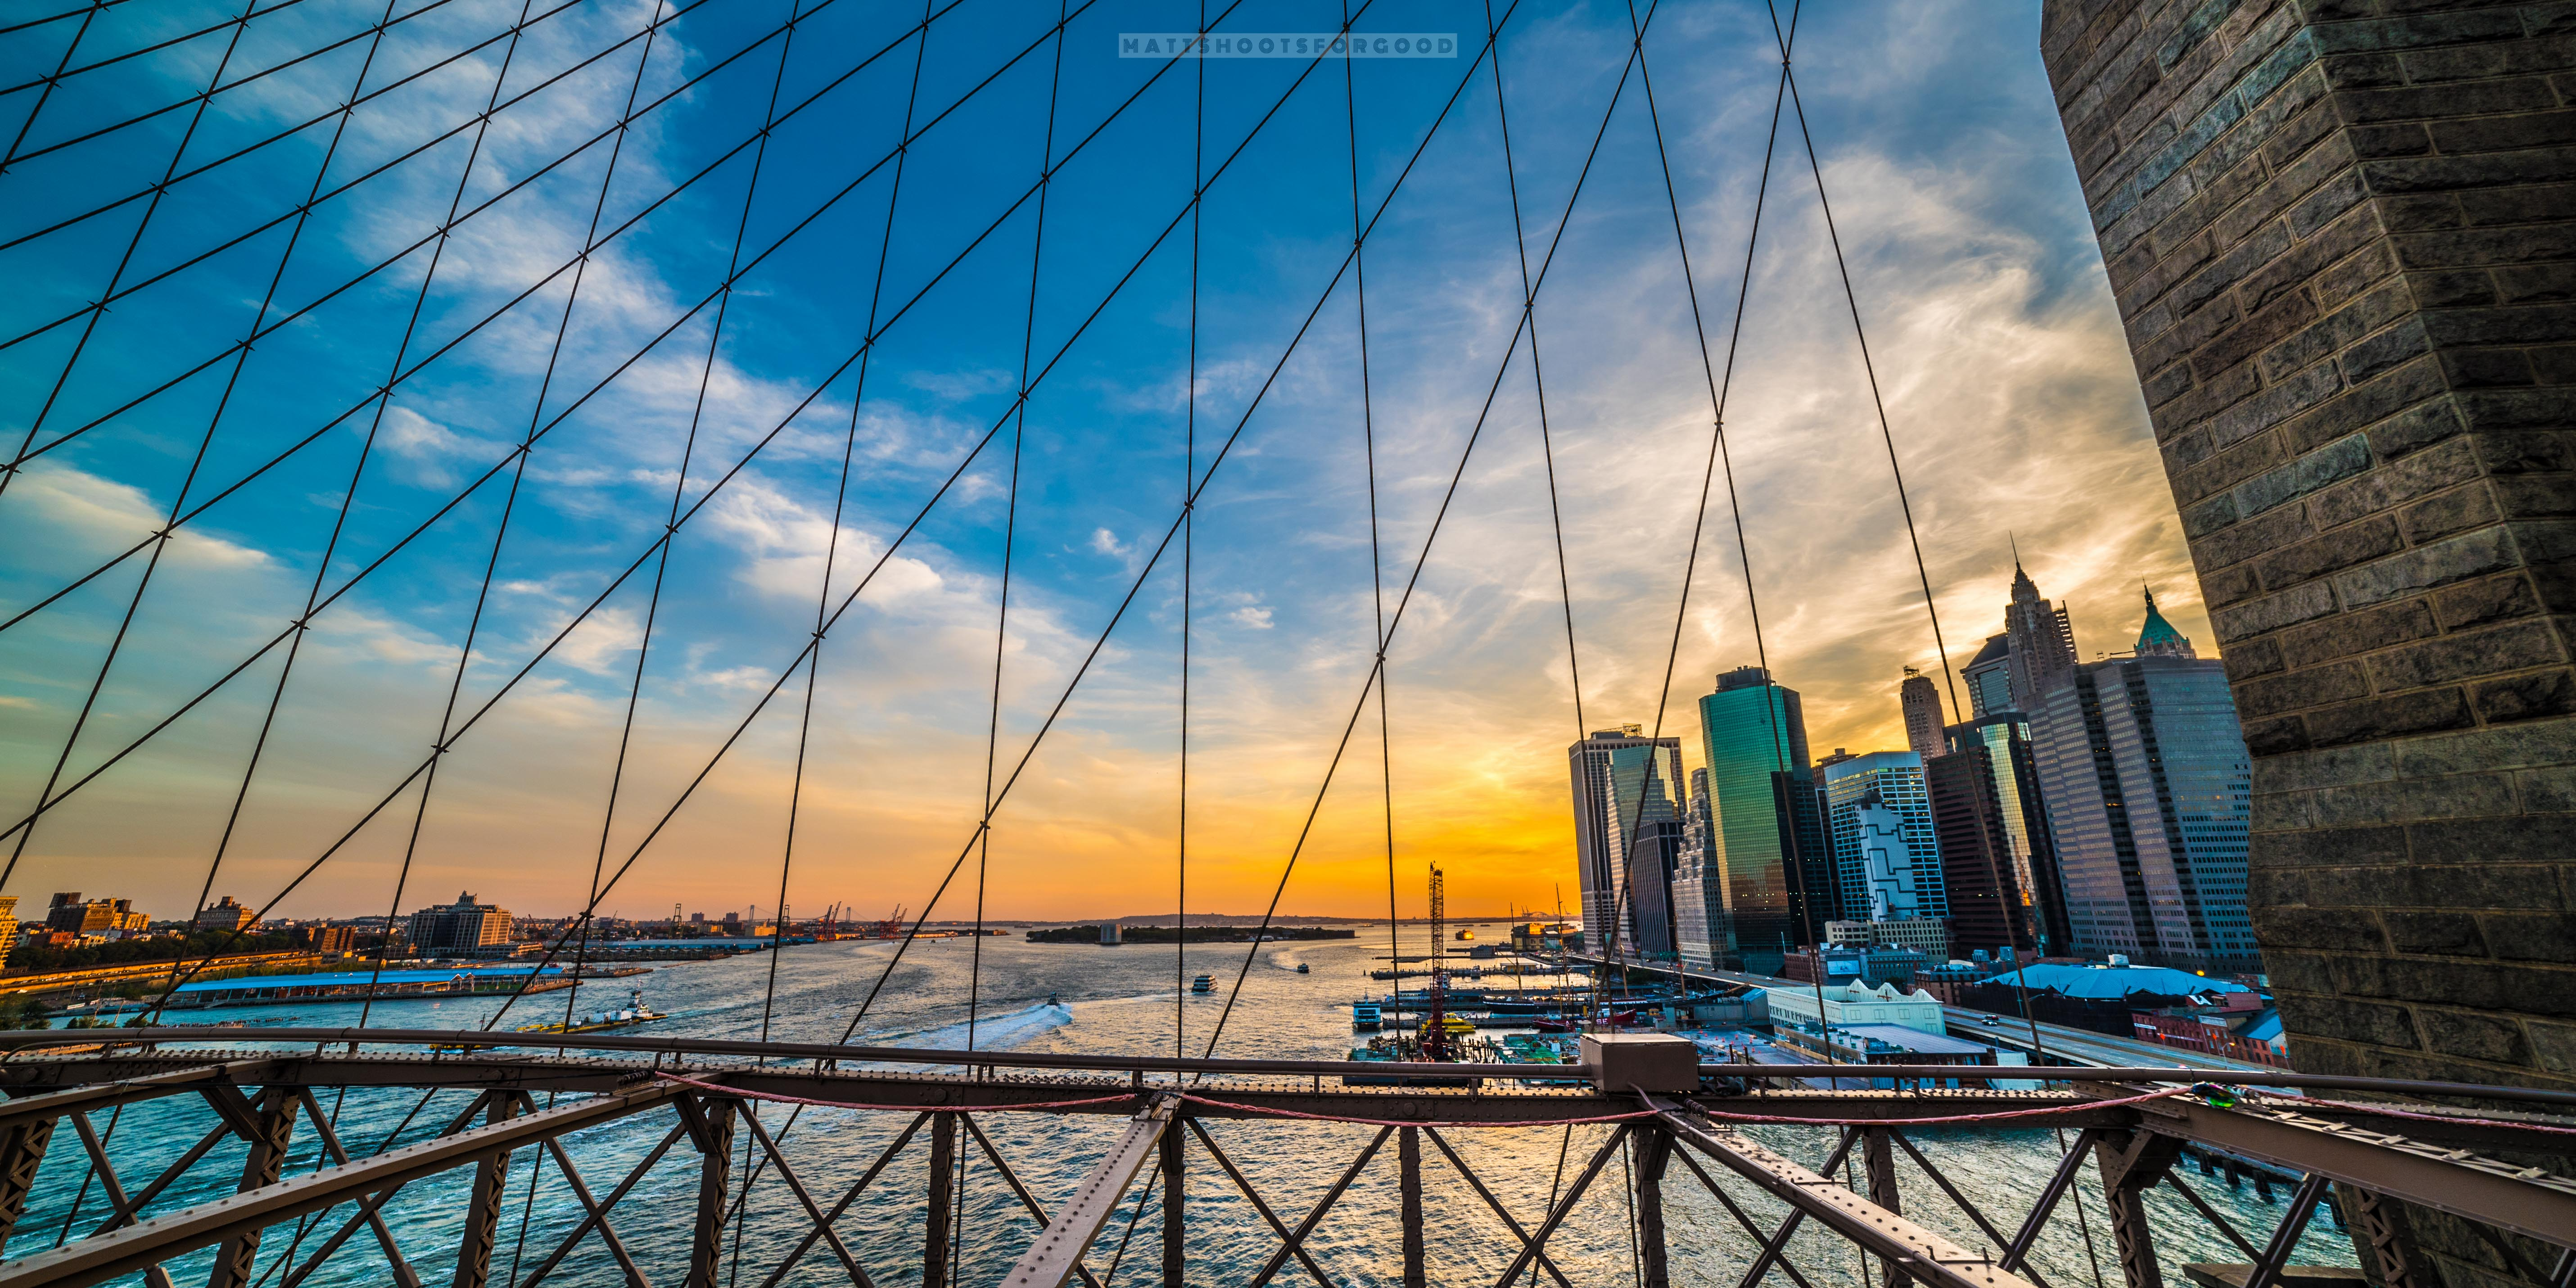 NYC Skyline Through the Wire